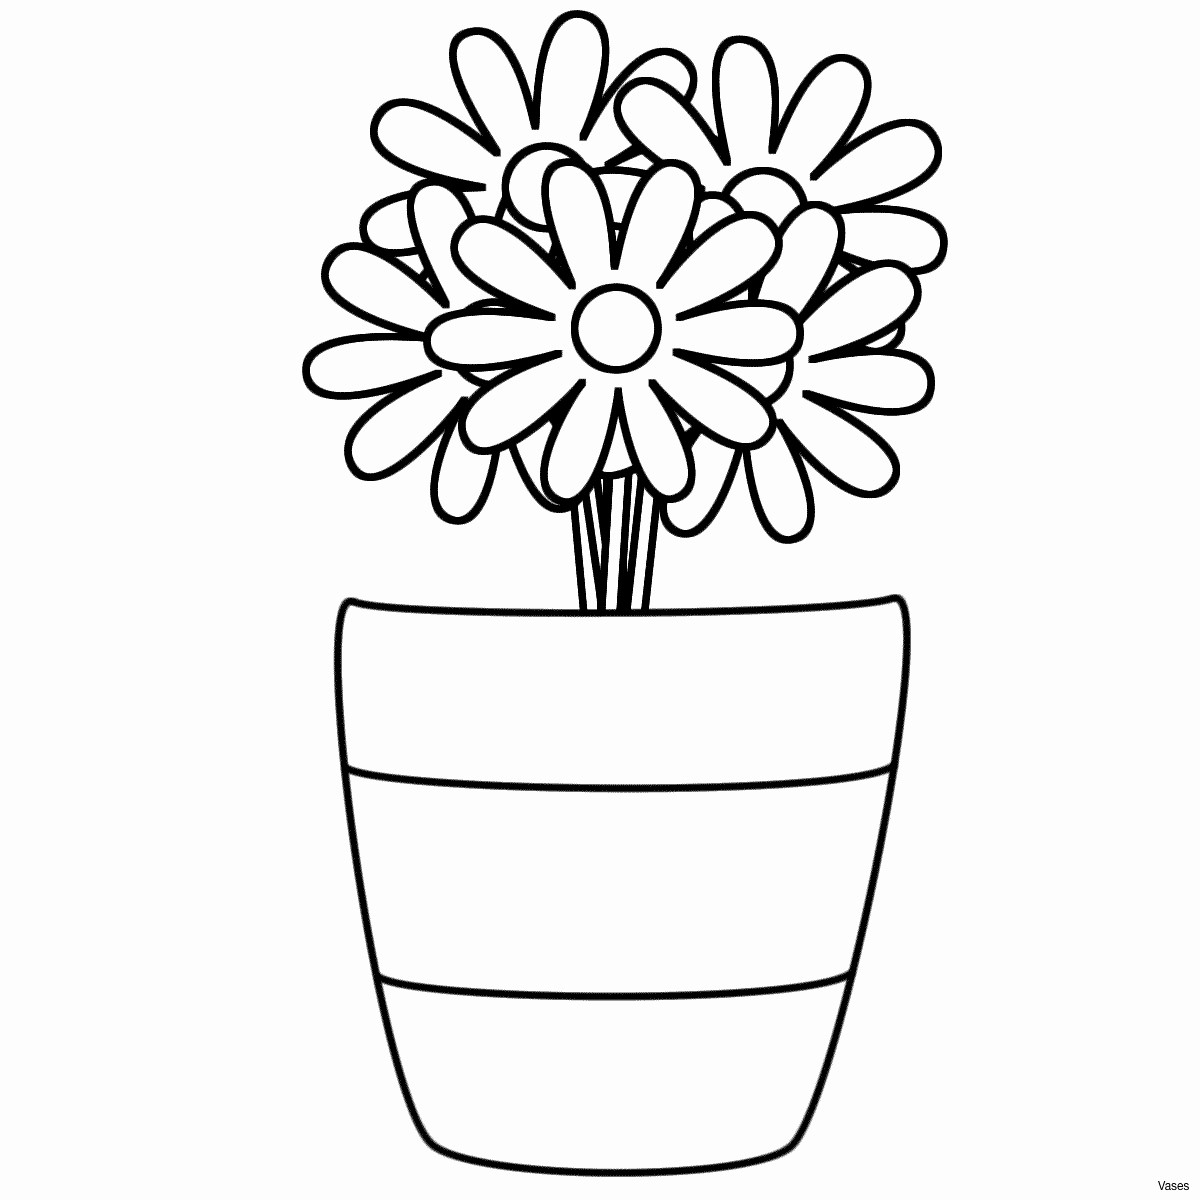 rustic flower vase ideas of flower color pages cool vases flower vase coloring page pages within flower color pages cool vases flower vase coloring page pages flowers in a top i 0d